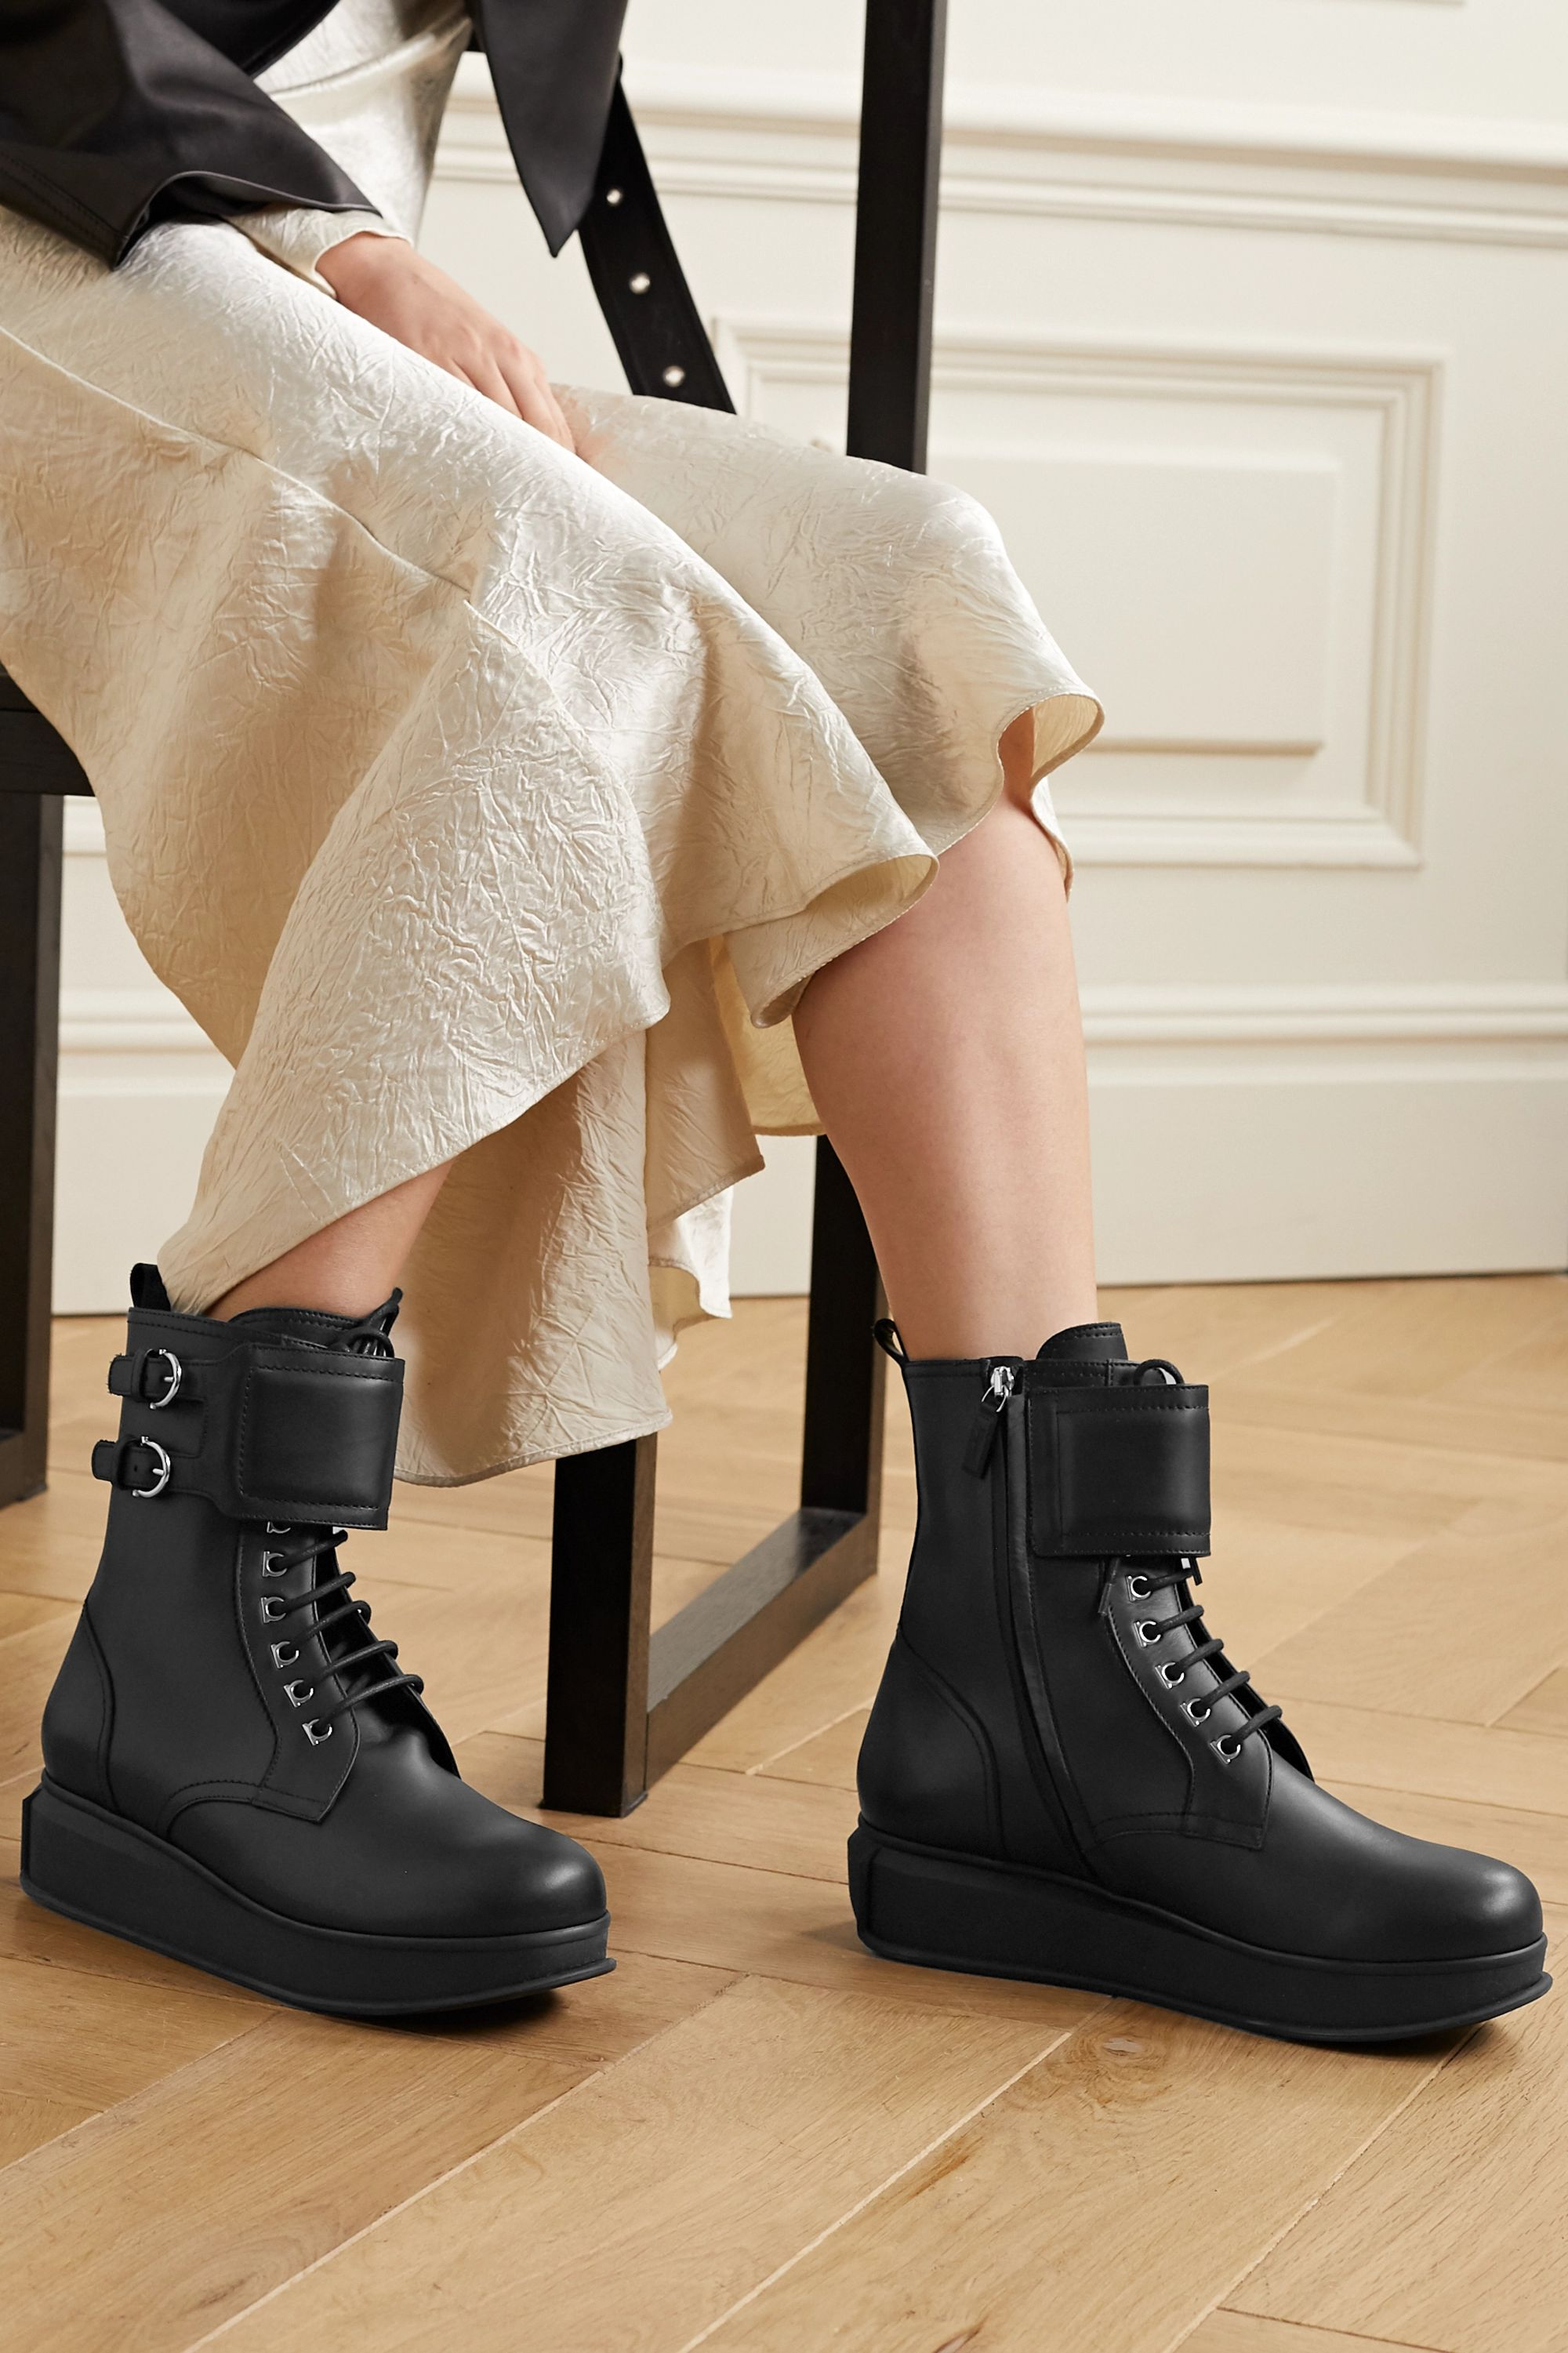 Black Karin leather ankle boots